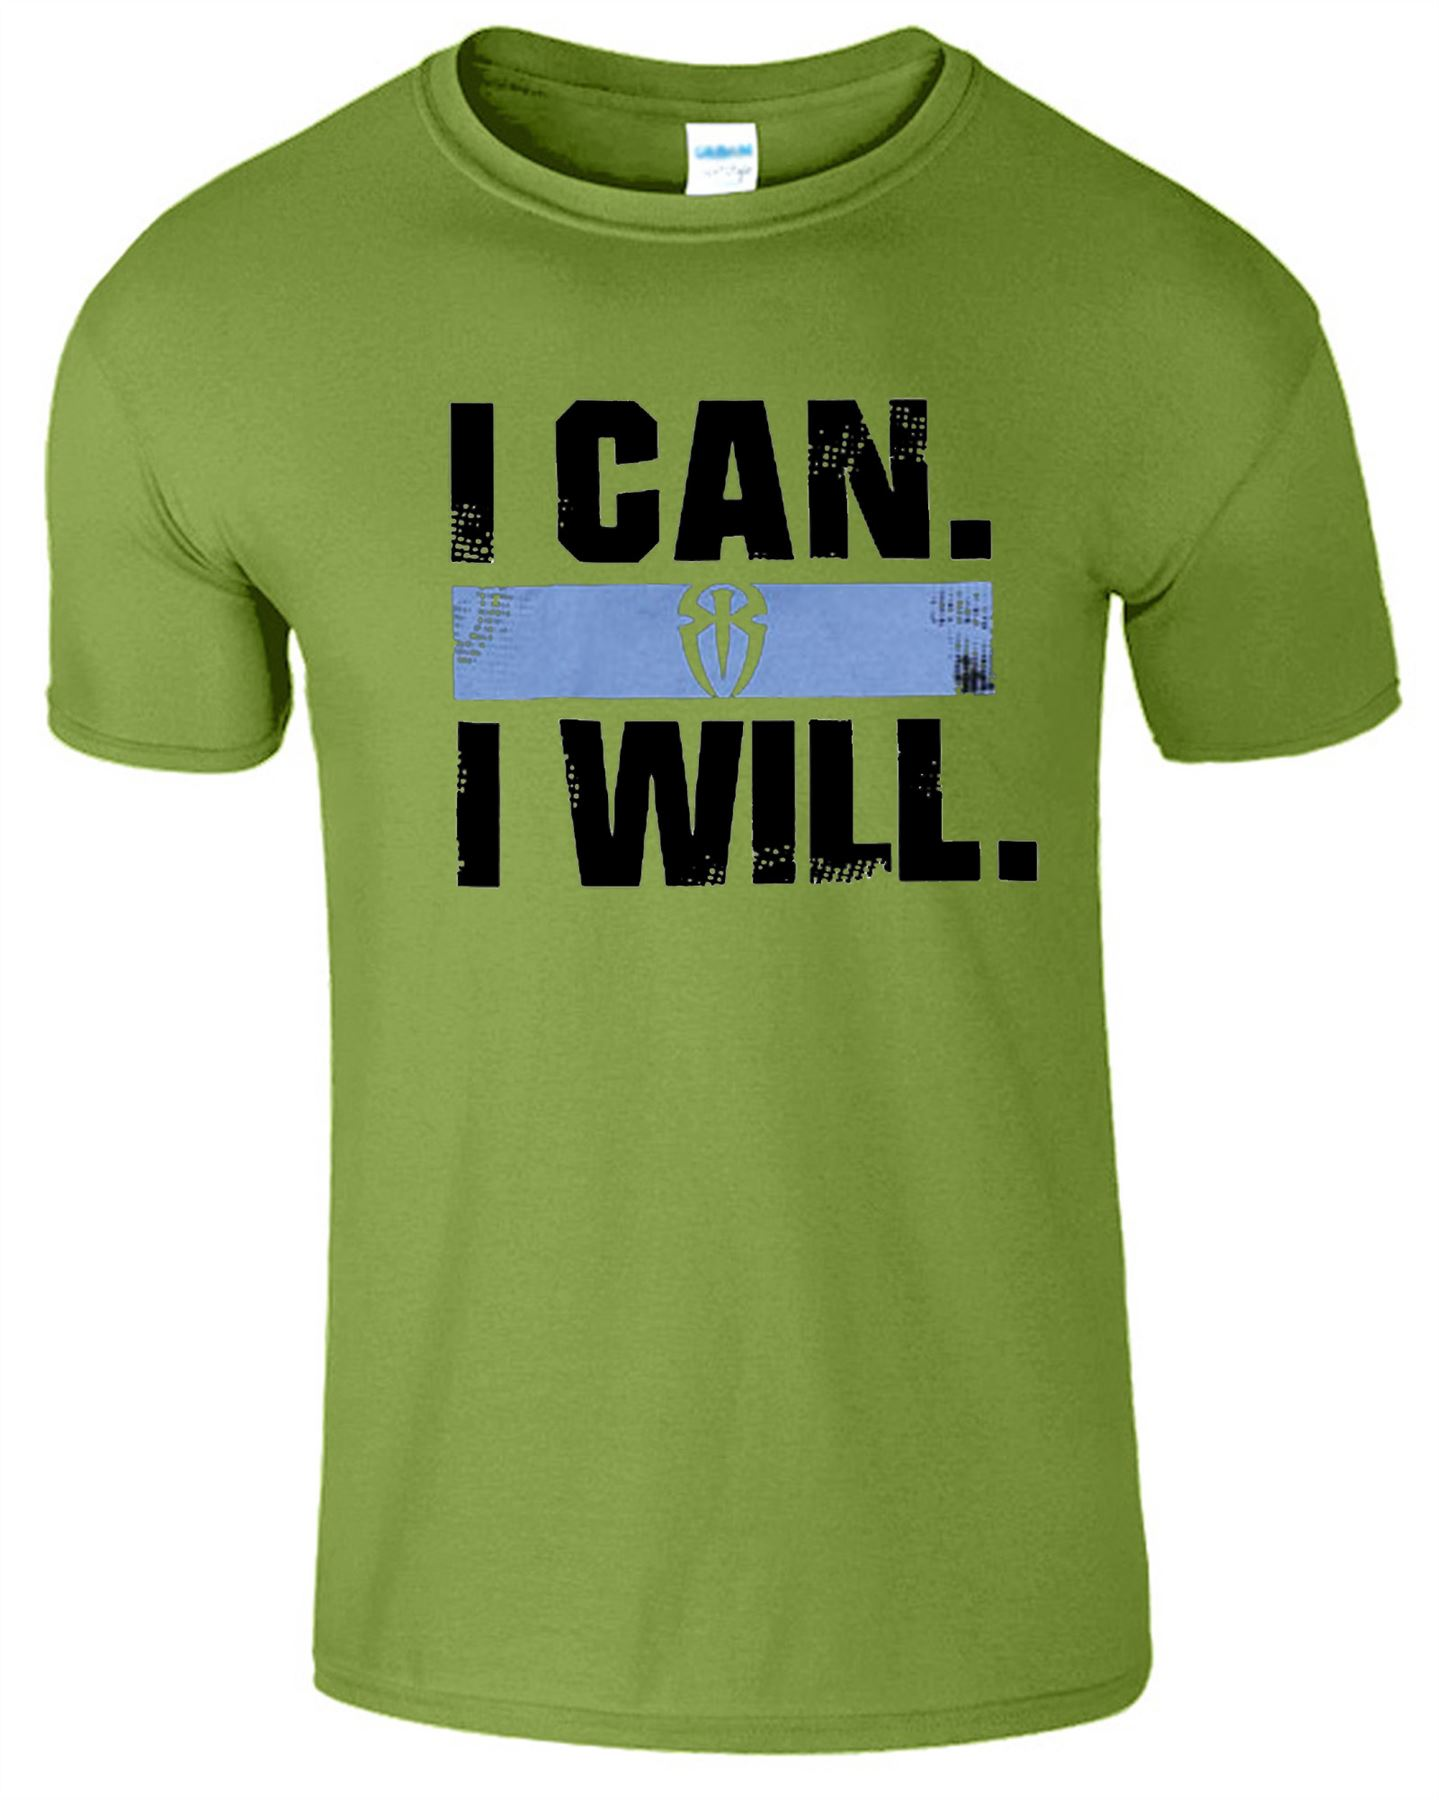 Roman reigns i can i will logo super star spear the shield for Where can i sell t shirts